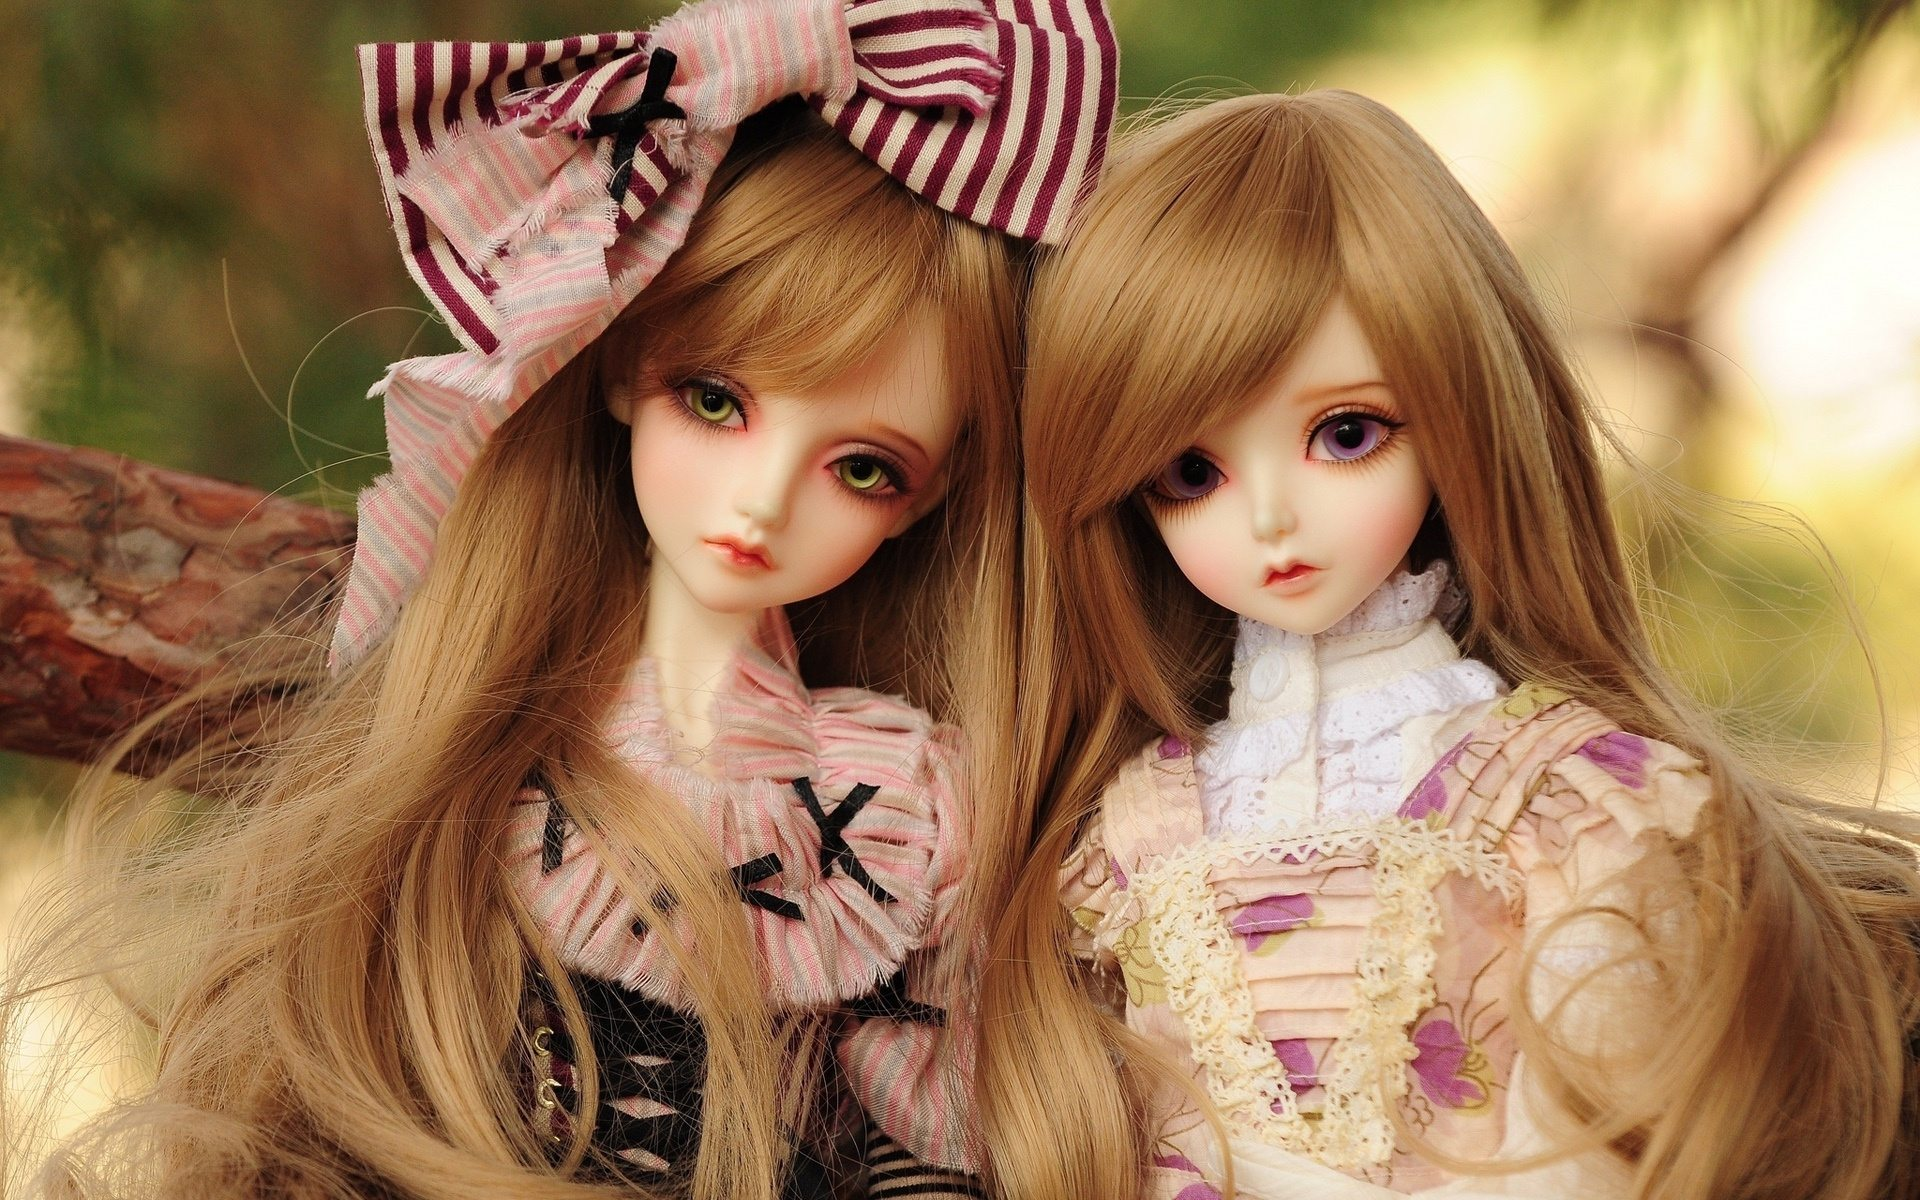 Swell Top 100 Beautiful Lovely Cute Barbie Doll Hd Wallpapers Images Hairstyles For Men Maxibearus